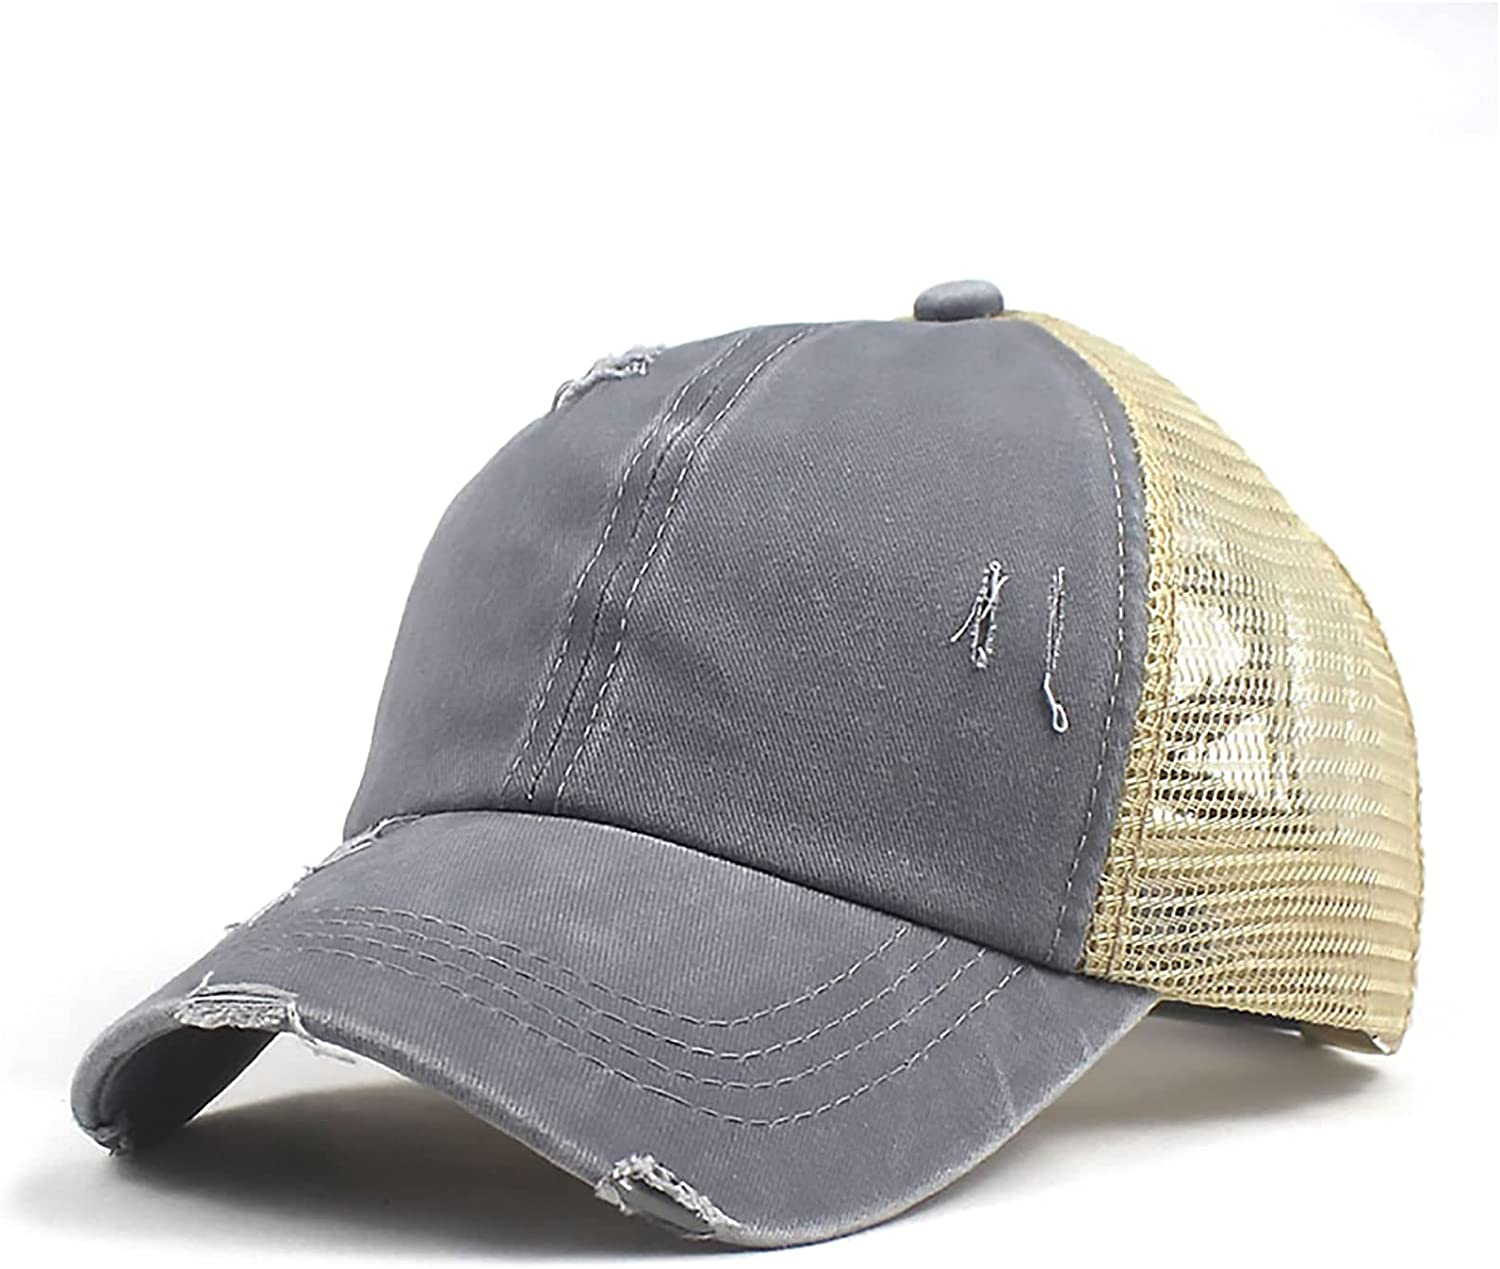 Edoneery Washed Distressed Adjustable Ponytail Baseball Hat for Outdoor Trucker Hats Mesh Back High Messy Bun Ponycap